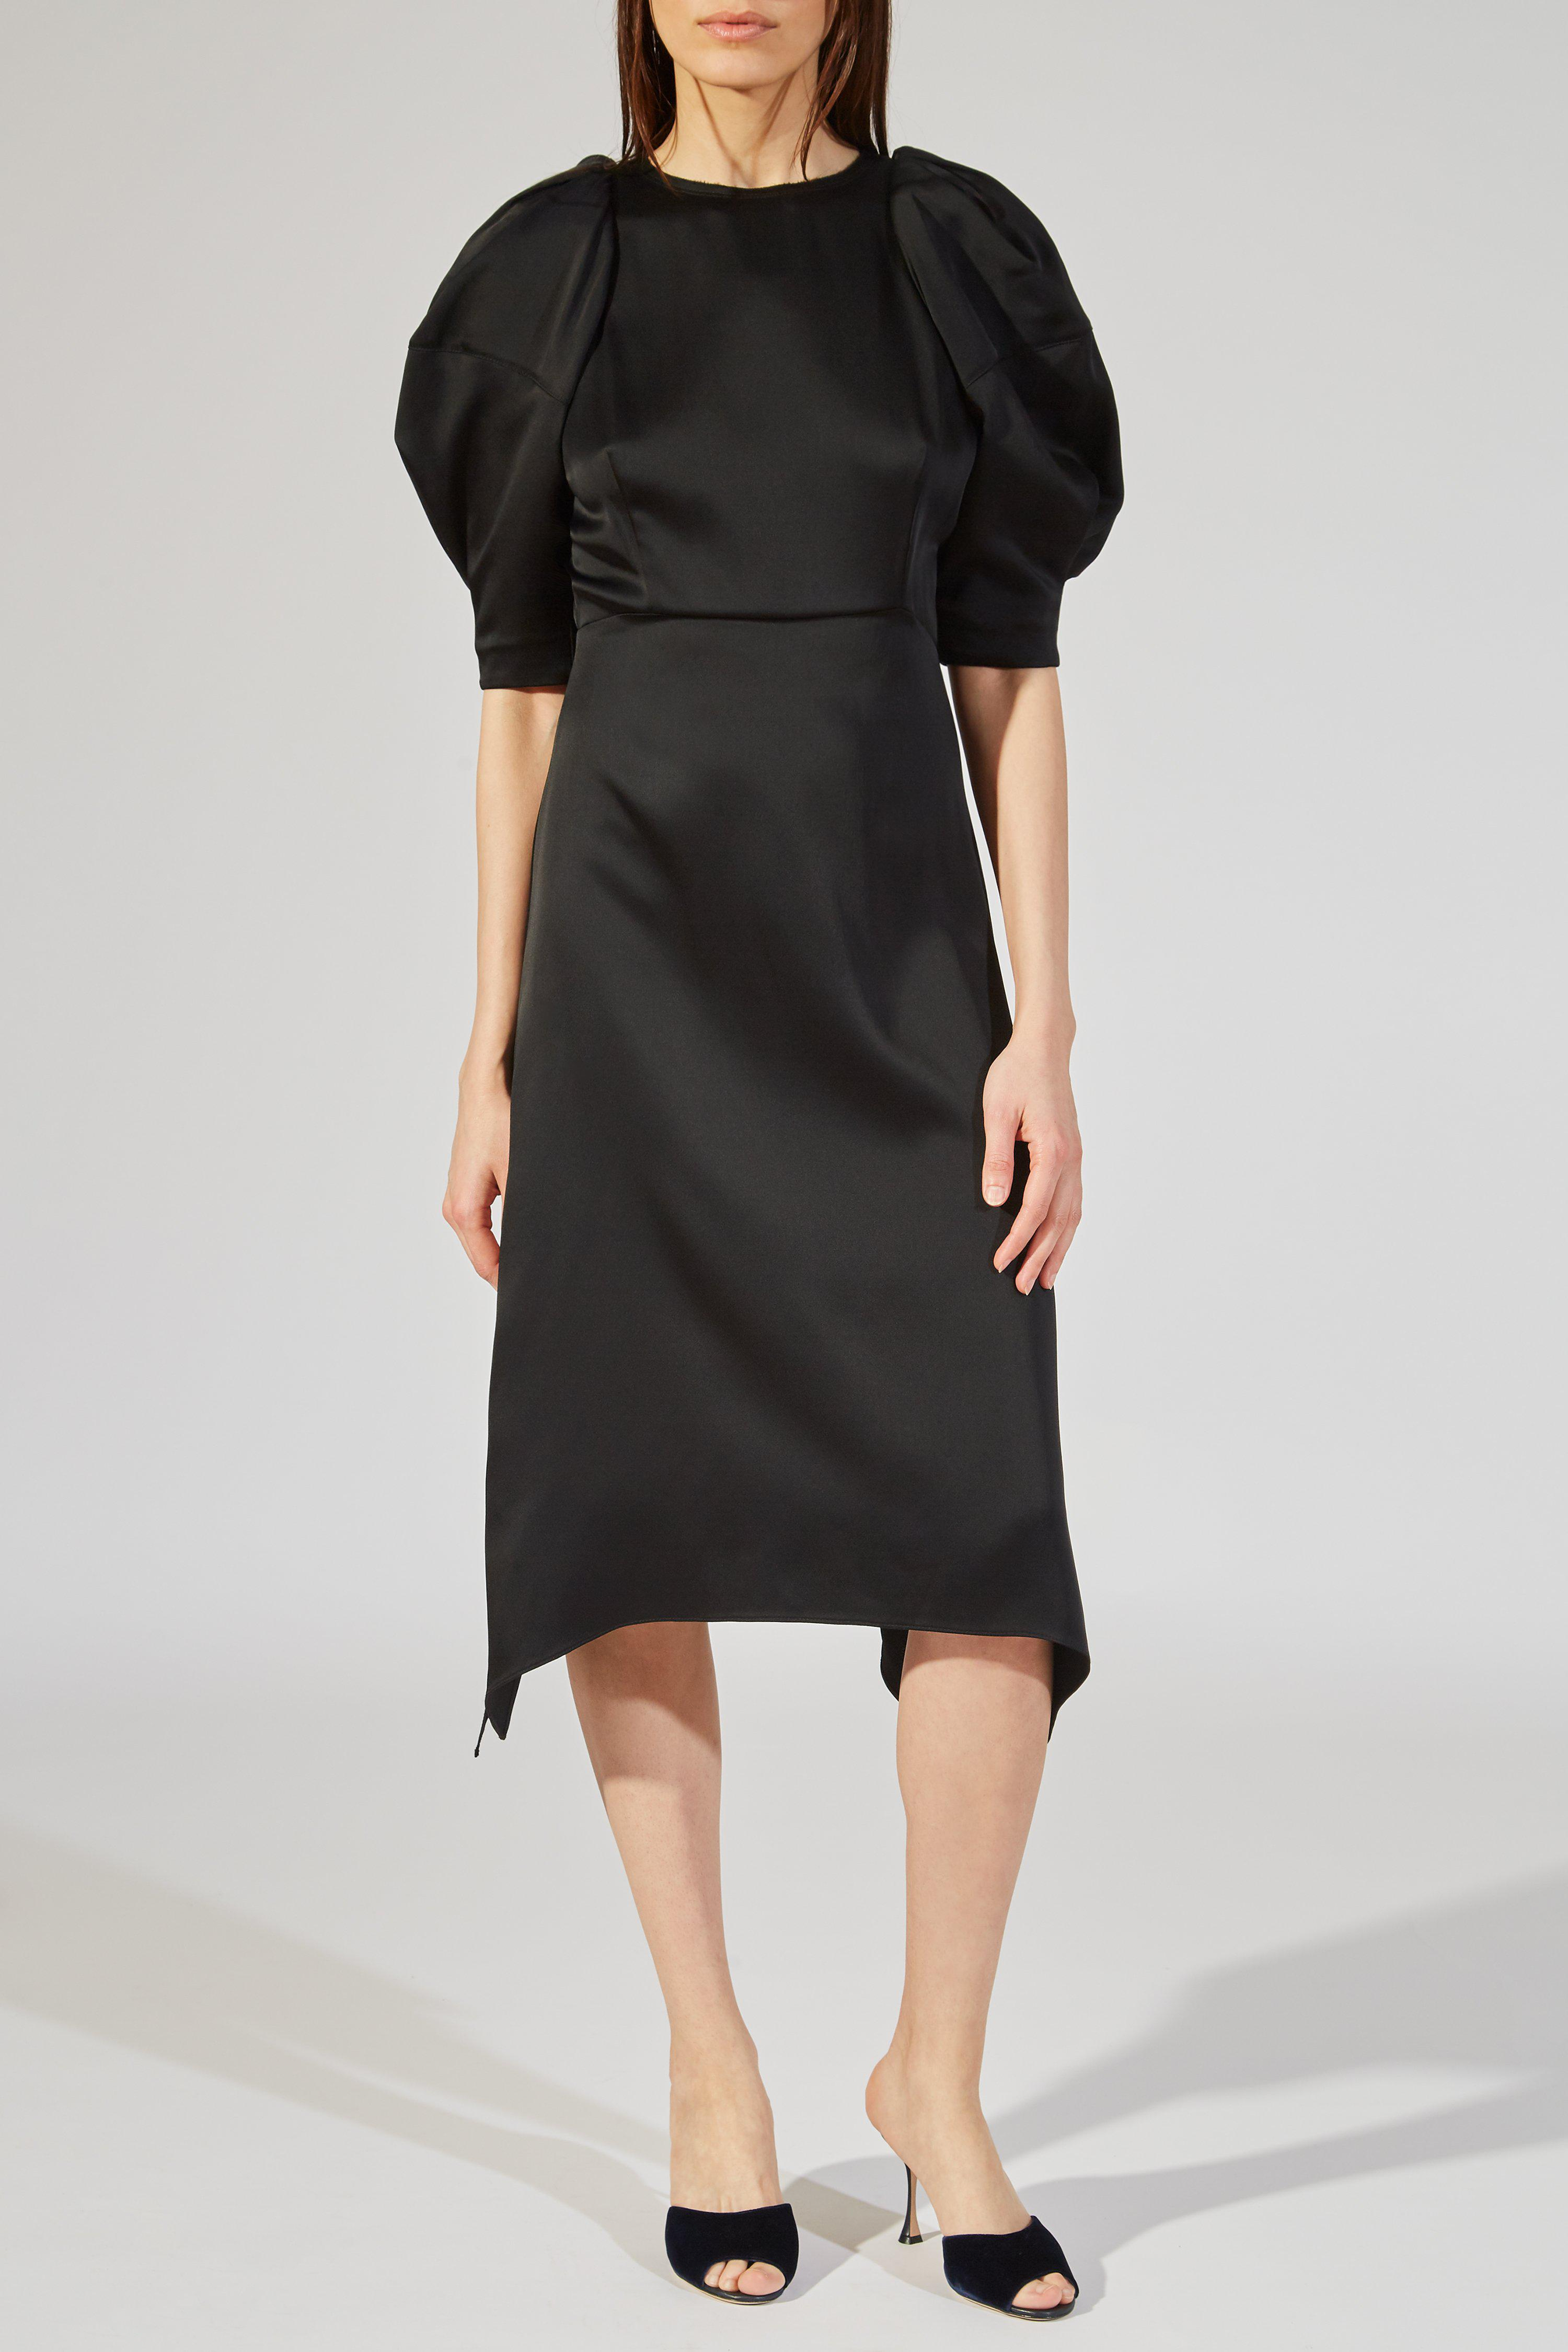 Denise dress - Black Khaite ssectU5OWc